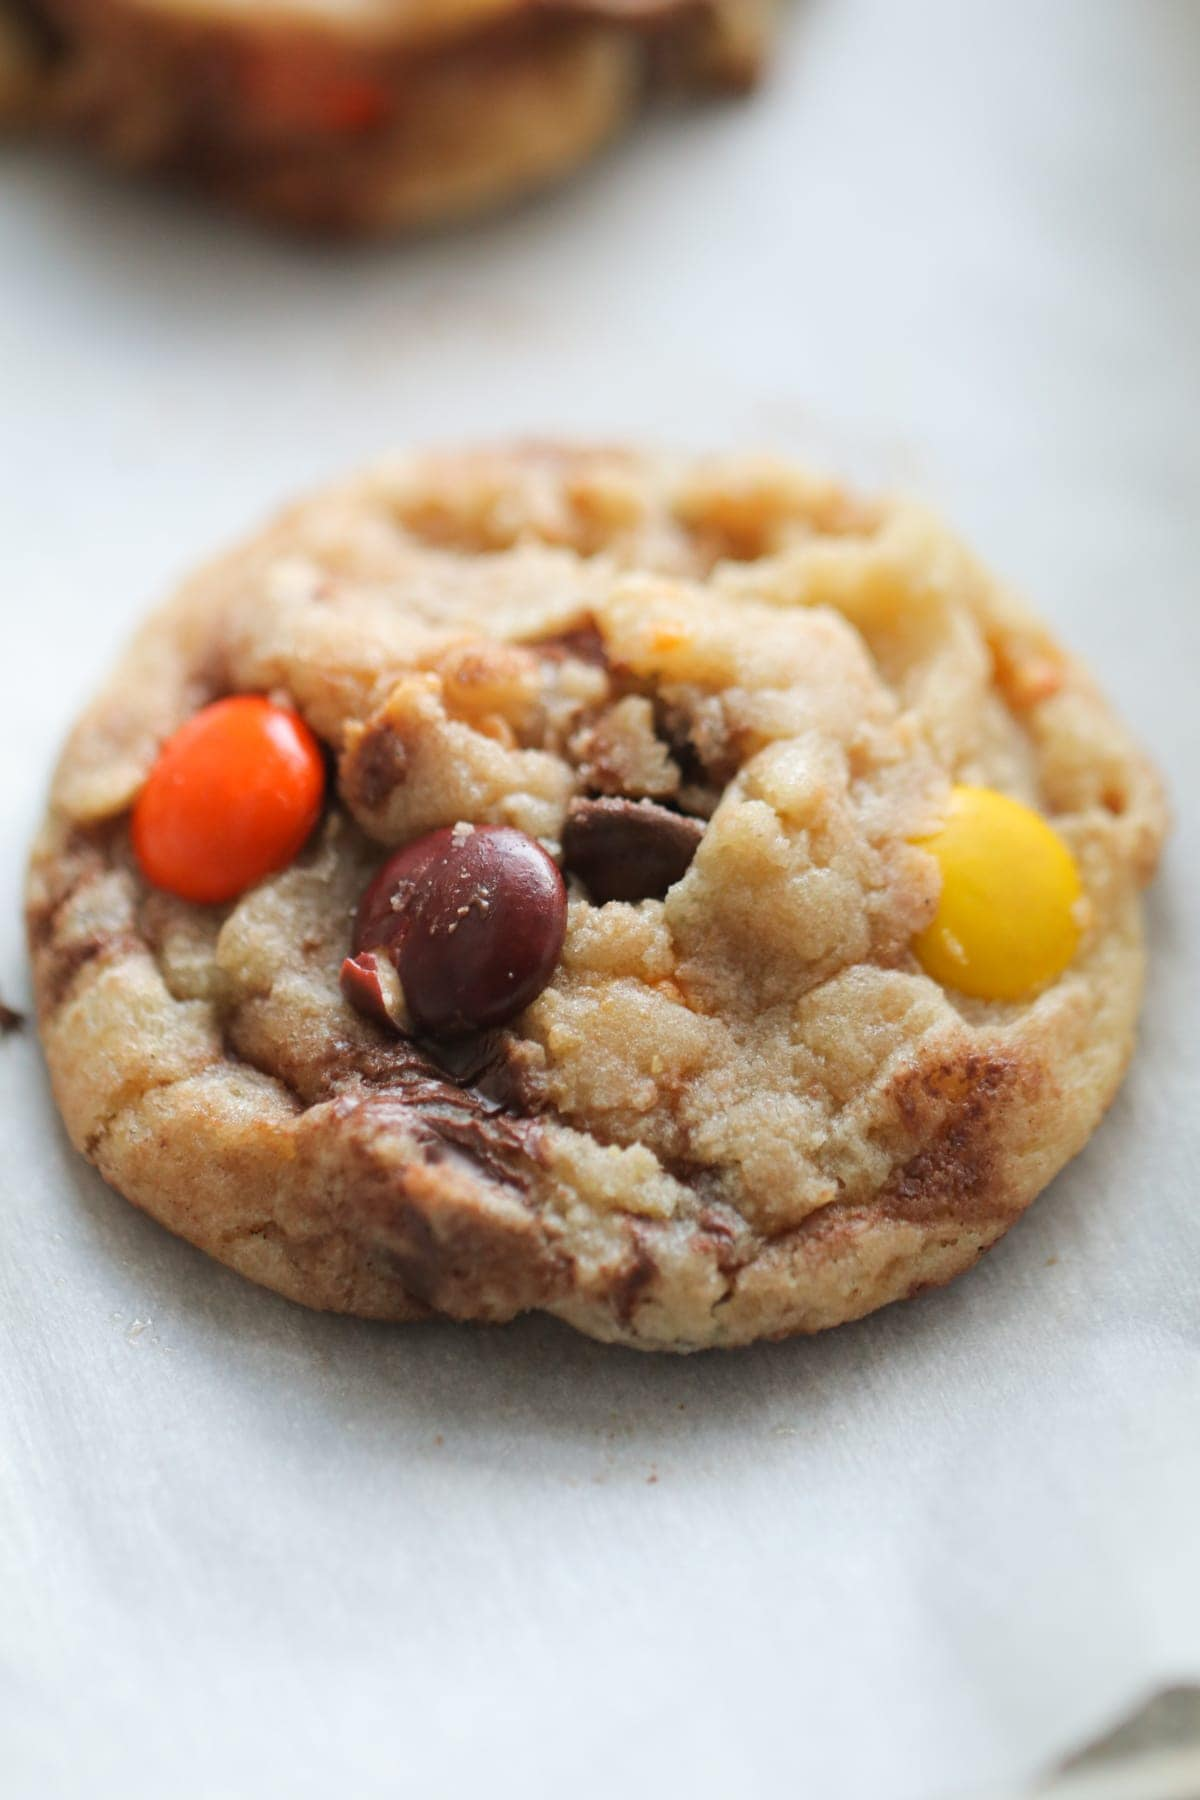 Reese's Pieces Butterfinger Cookies